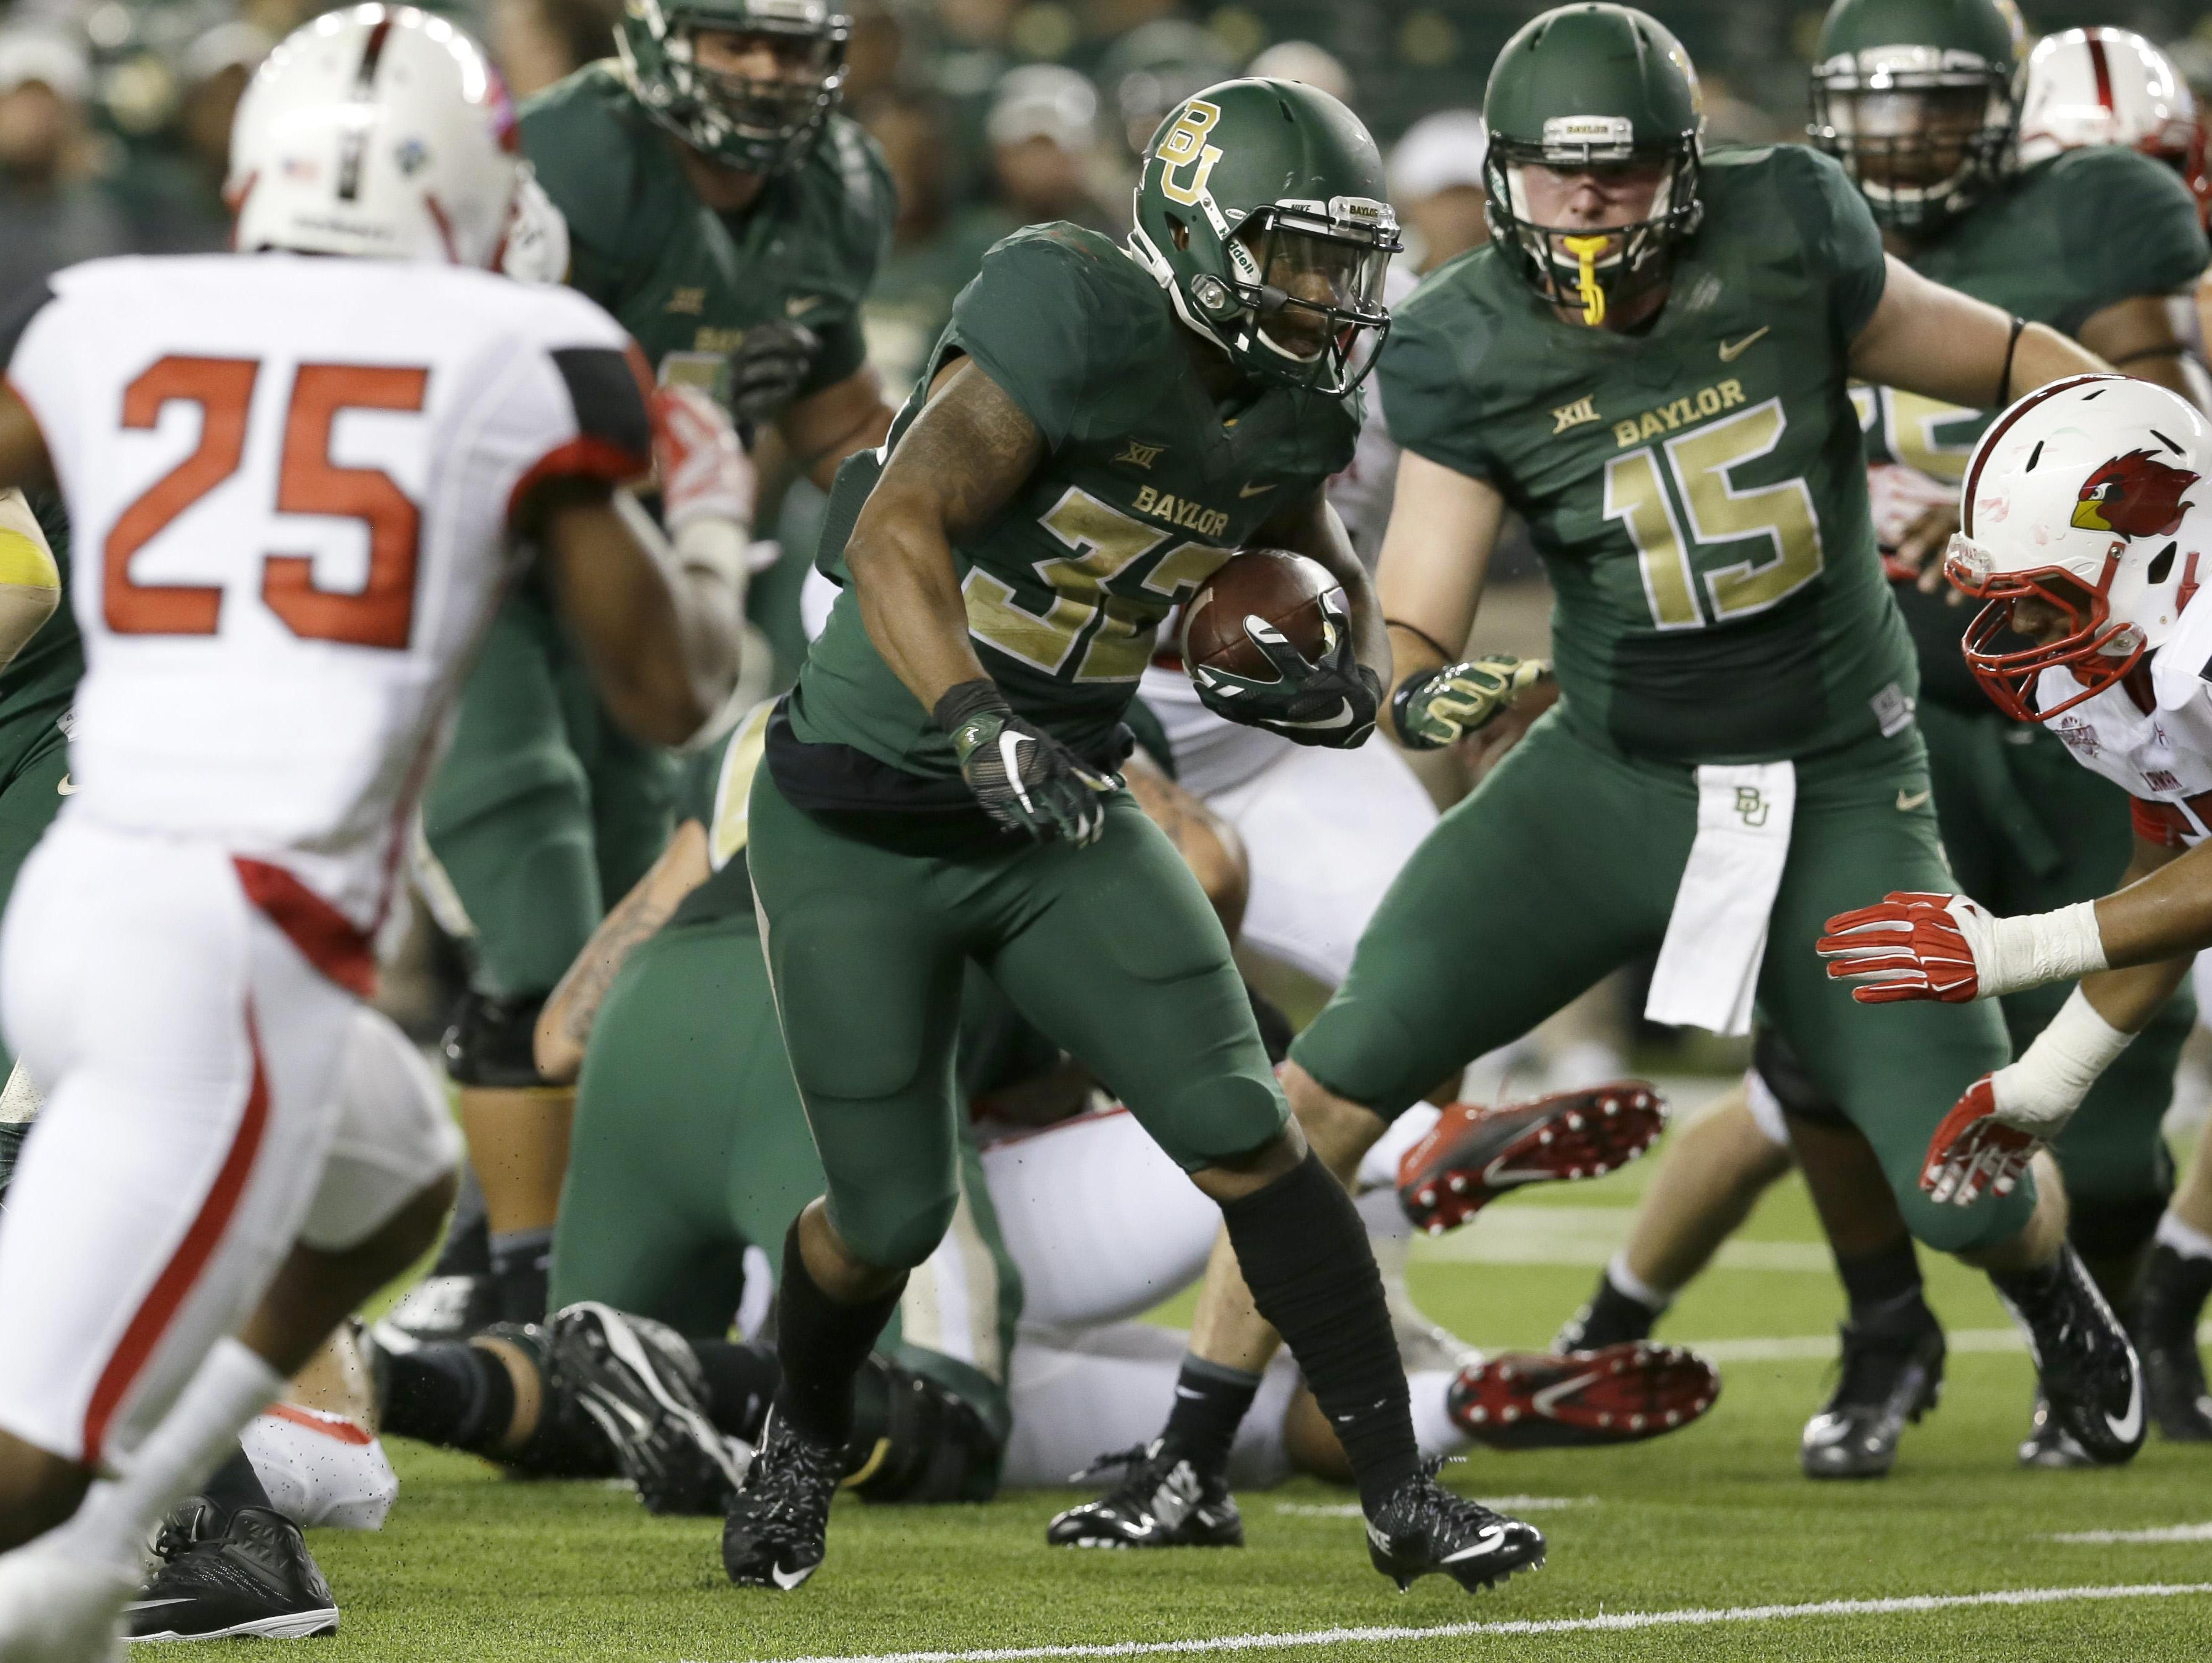 Baylor running back Shock Linwood (32) finds a hole to run though on his way to scoring a touchdown during the first half of an NCAA college football game against Lamar, Saturday, Sept. 12, 2015, in Waco, Texas. At left is Lamar defensive back Tommie Barrett (25) and at right is Baylor tight end Gus Penning (15). (AP Photo/LM Otero)